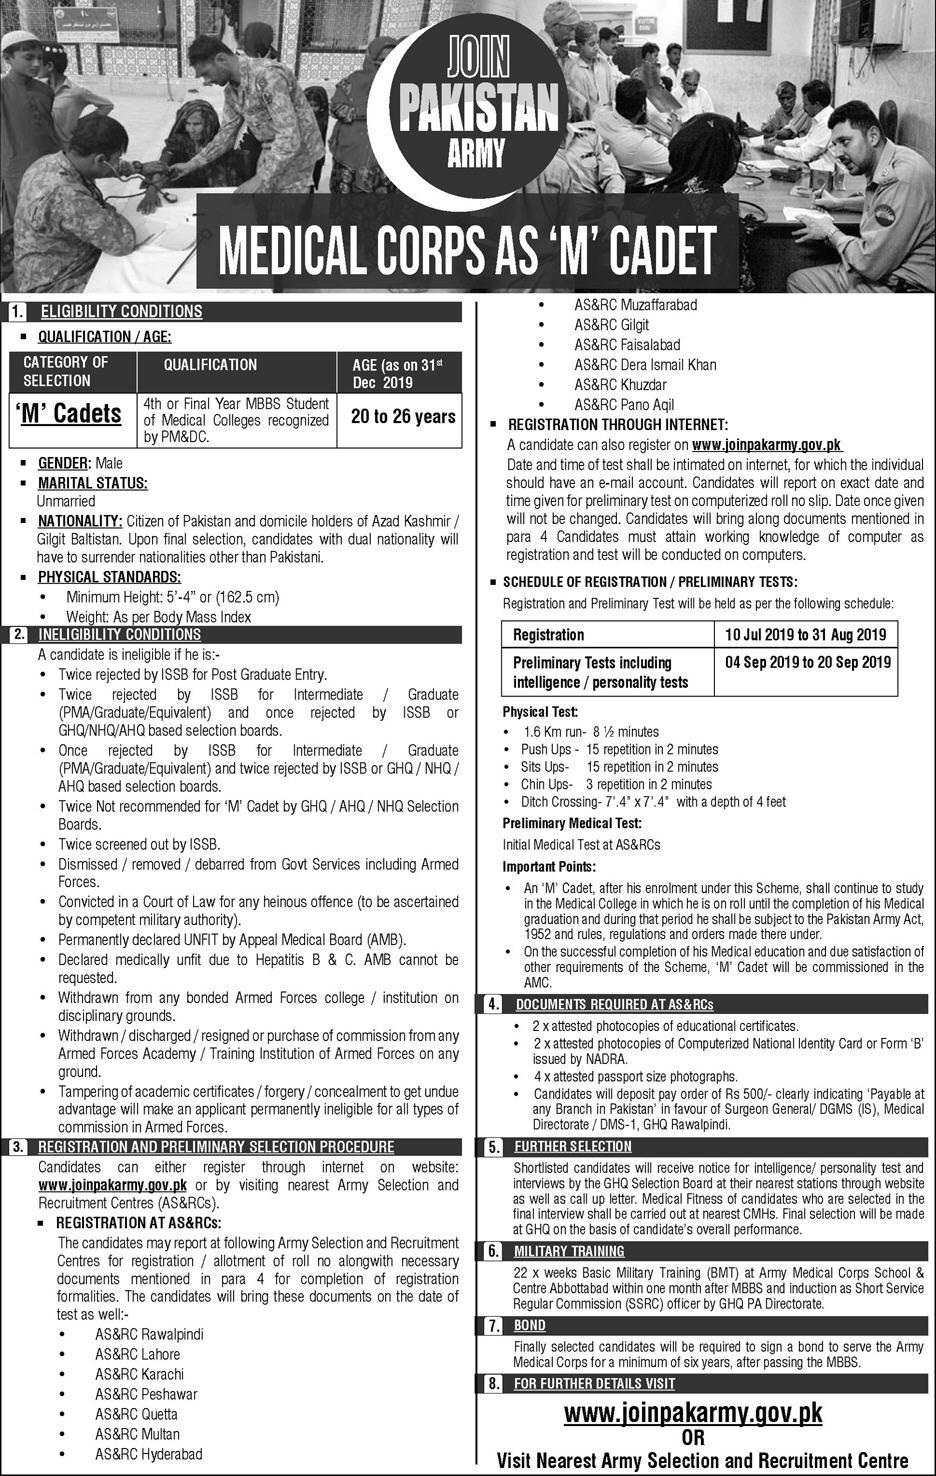 Pak Army medical Corp, Pak army jobs M Cadet, Join Pak Army